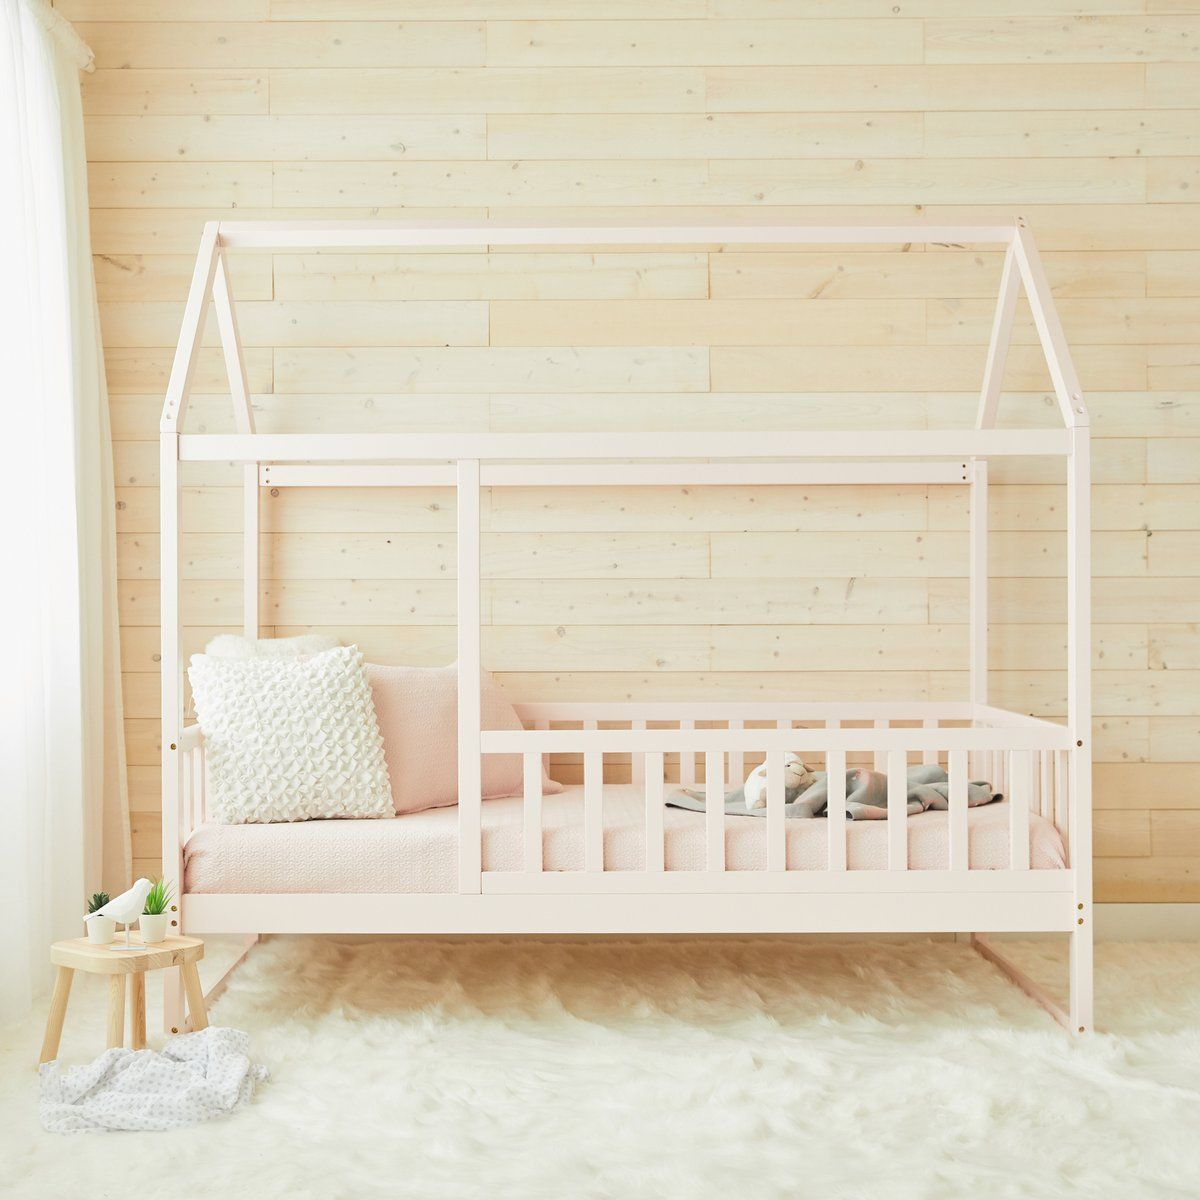 House Bed With Rails PINK Twin Size (preorder) in